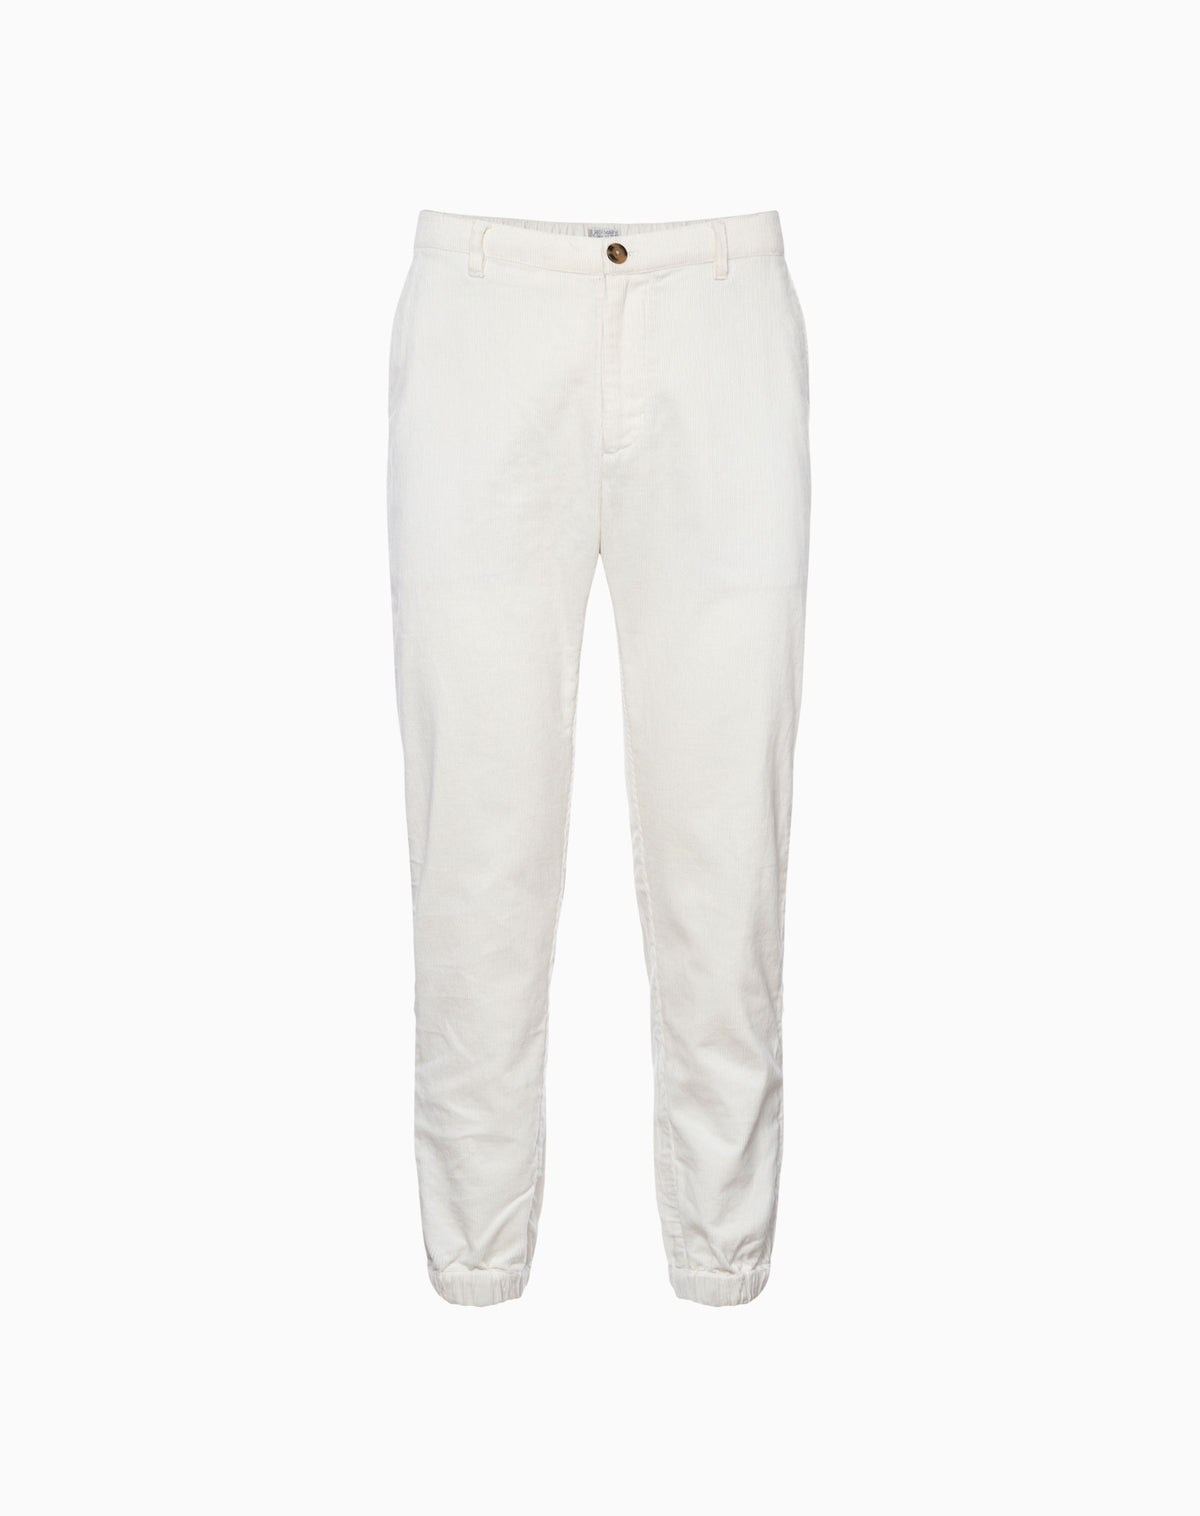 Deck Jogger in White Corduroy